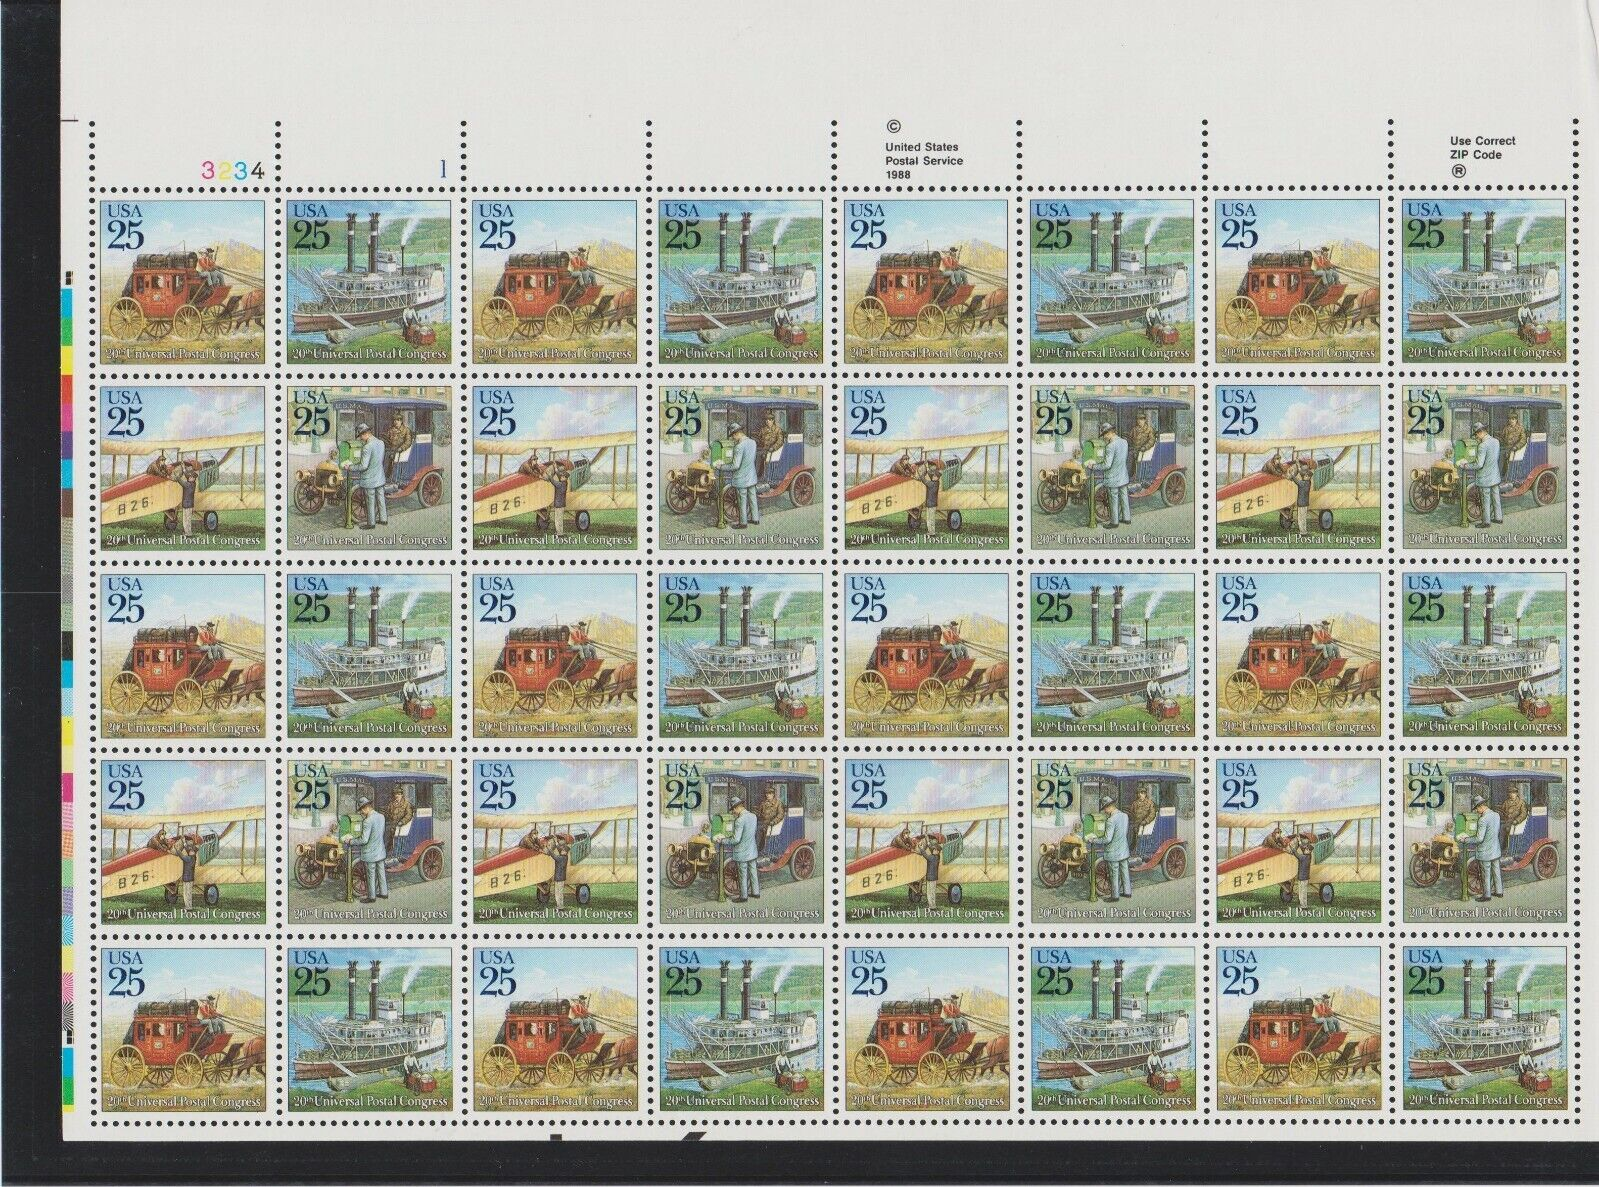 US Traditional Mail Delivery Transportation Sheet Of 40 MNH Scott 2434-2437 - $21.94